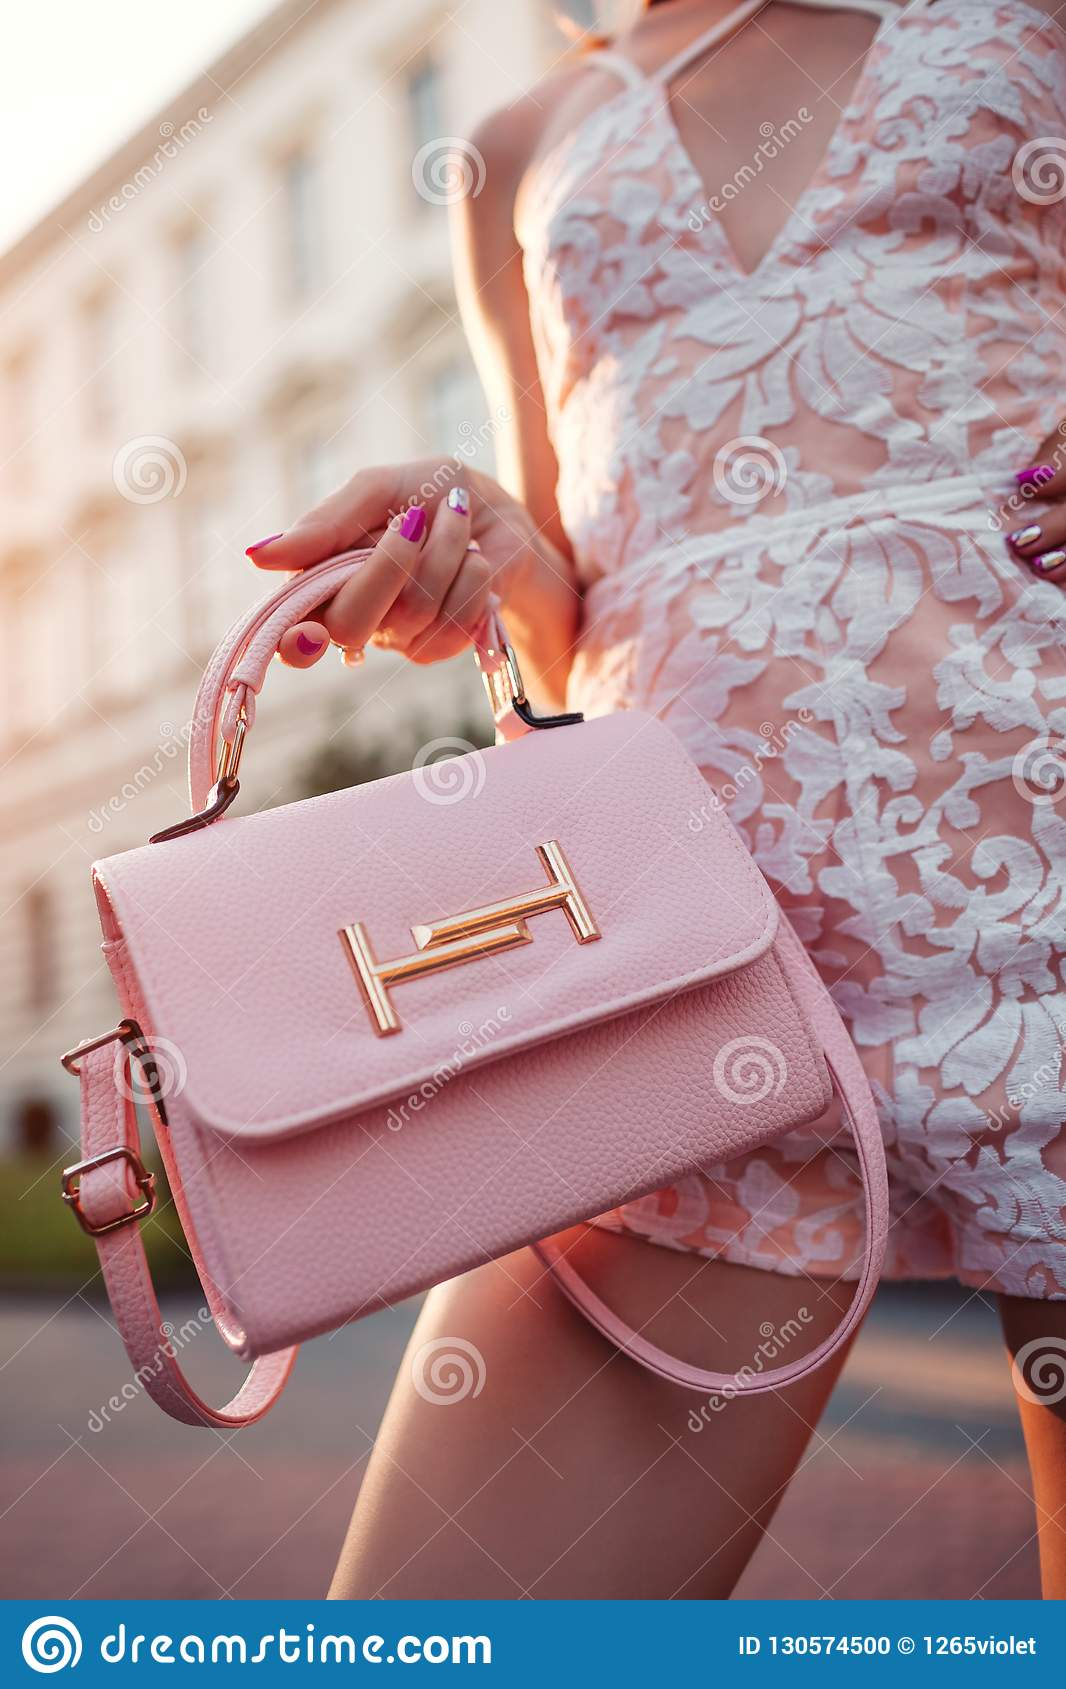 8e2fe382 Close-up of stylish female handbag. Fashionable woman holding beautiful  accessory and wearing outfit